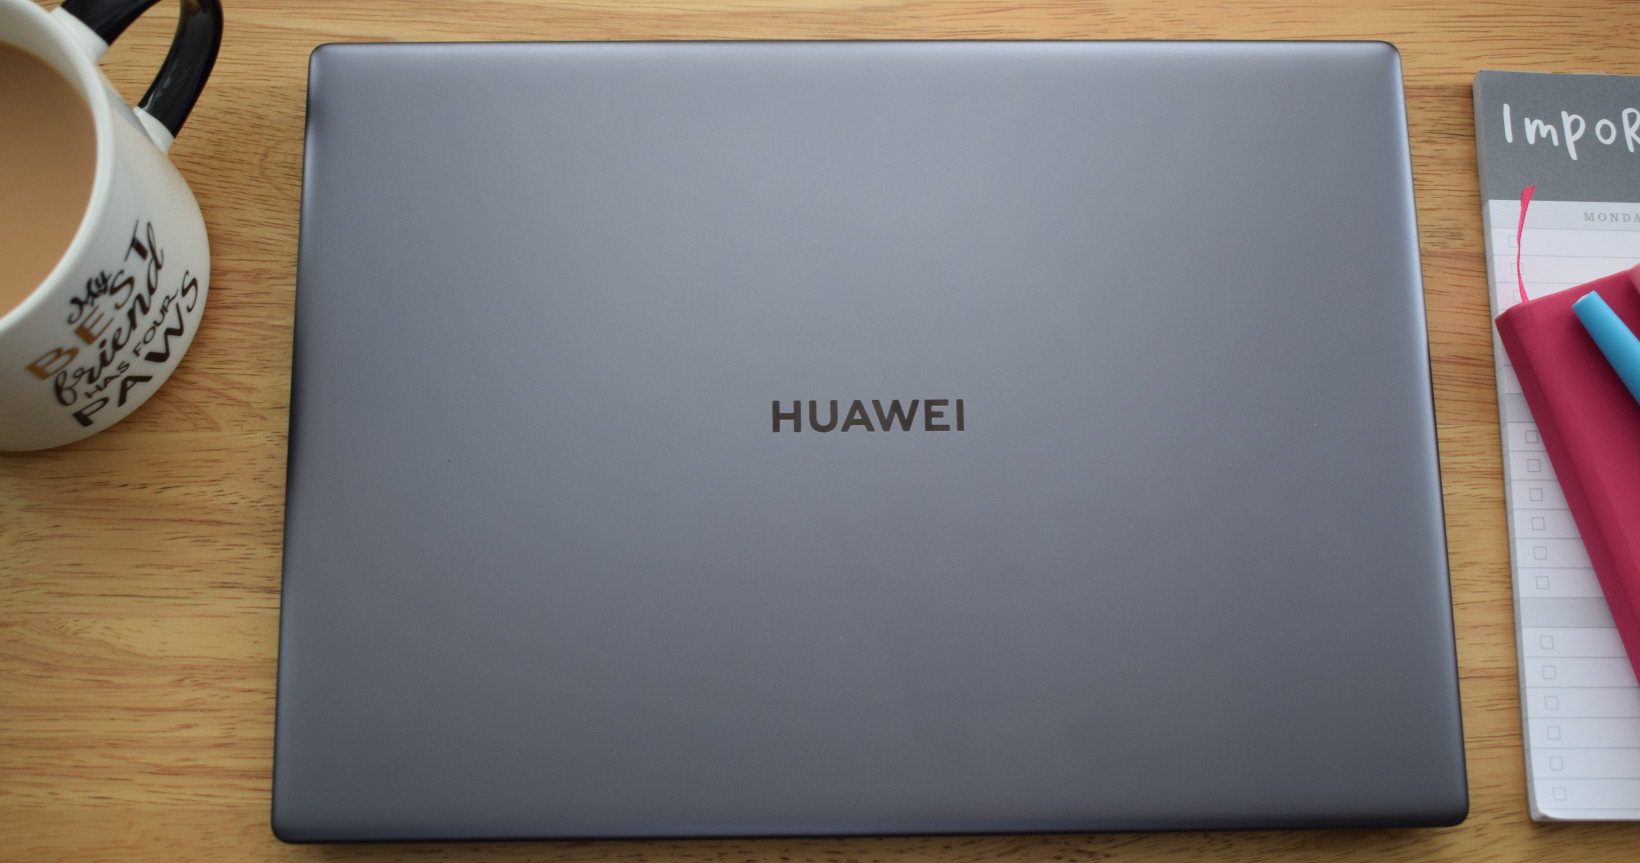 Best Laptop For Fl Studio 2020 Review: The Huawei Matebook X Pro (2019) is the best laptop I've